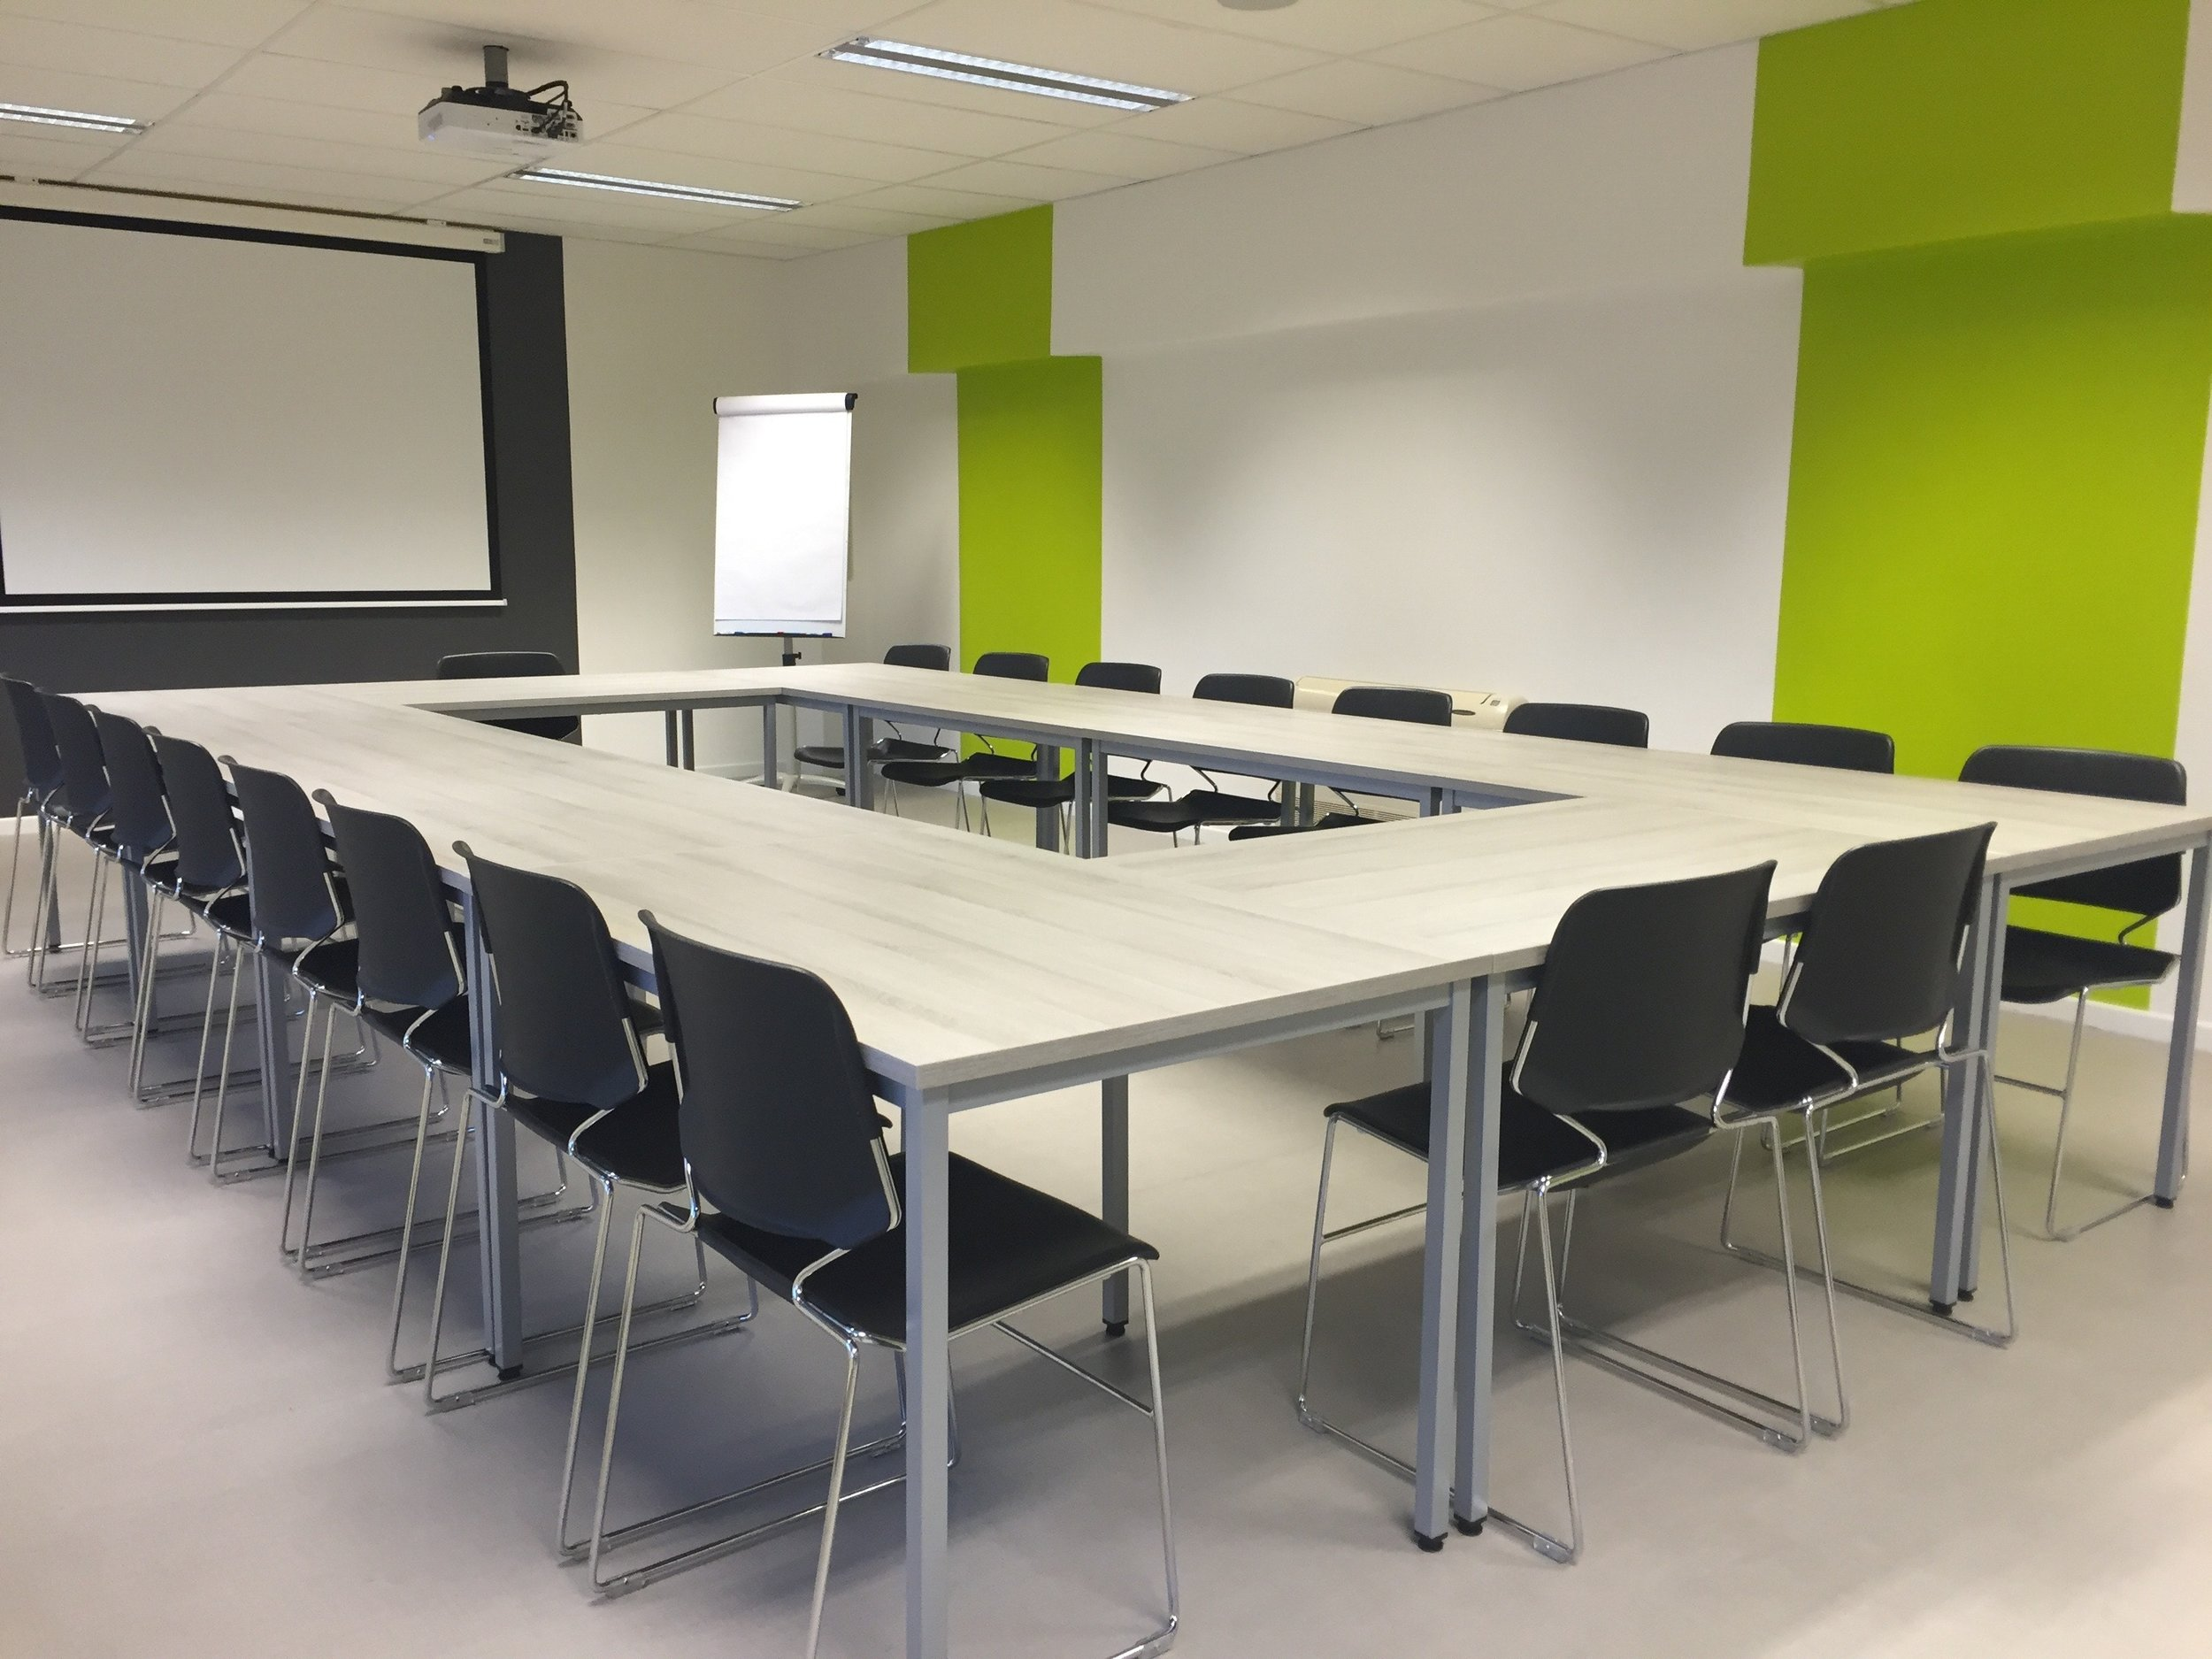 board-room-chairs-conference-room-159805.jpg